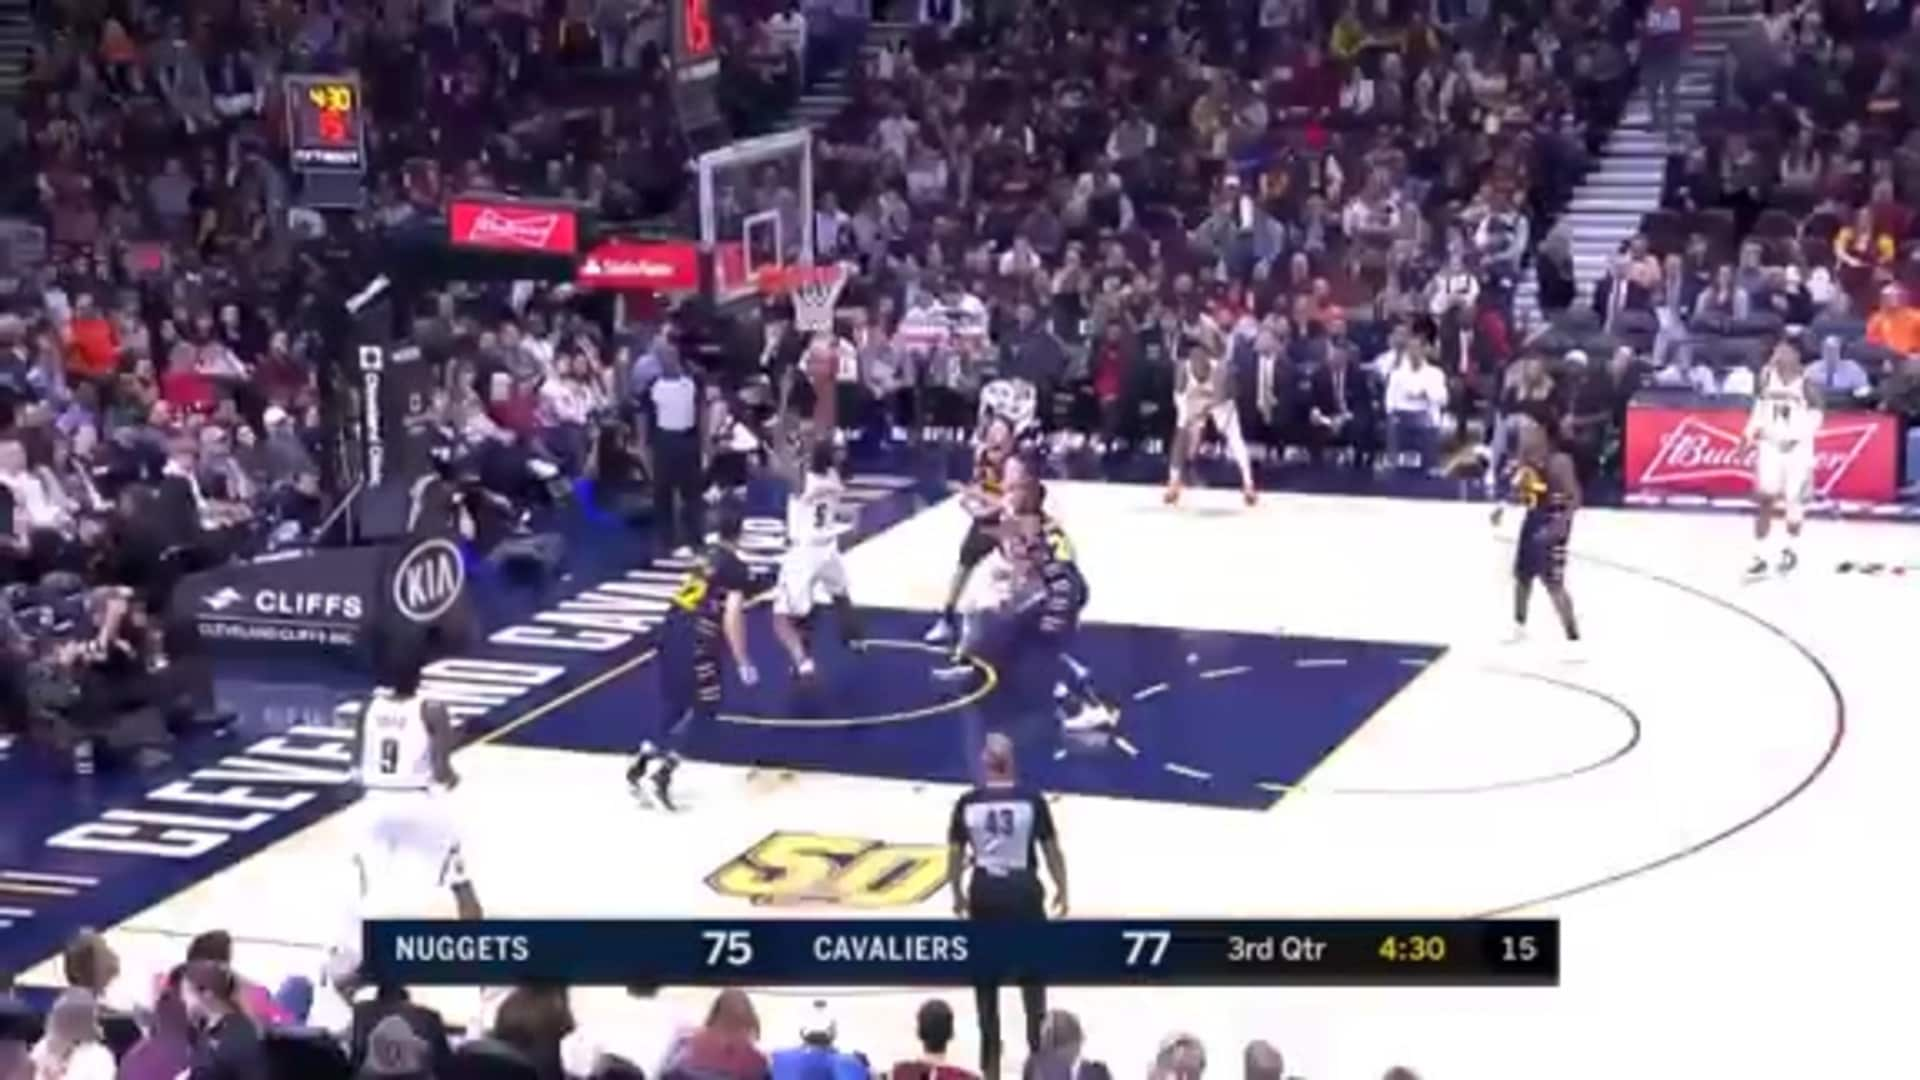 Thompson Rejects Nuggets Shot Attempt